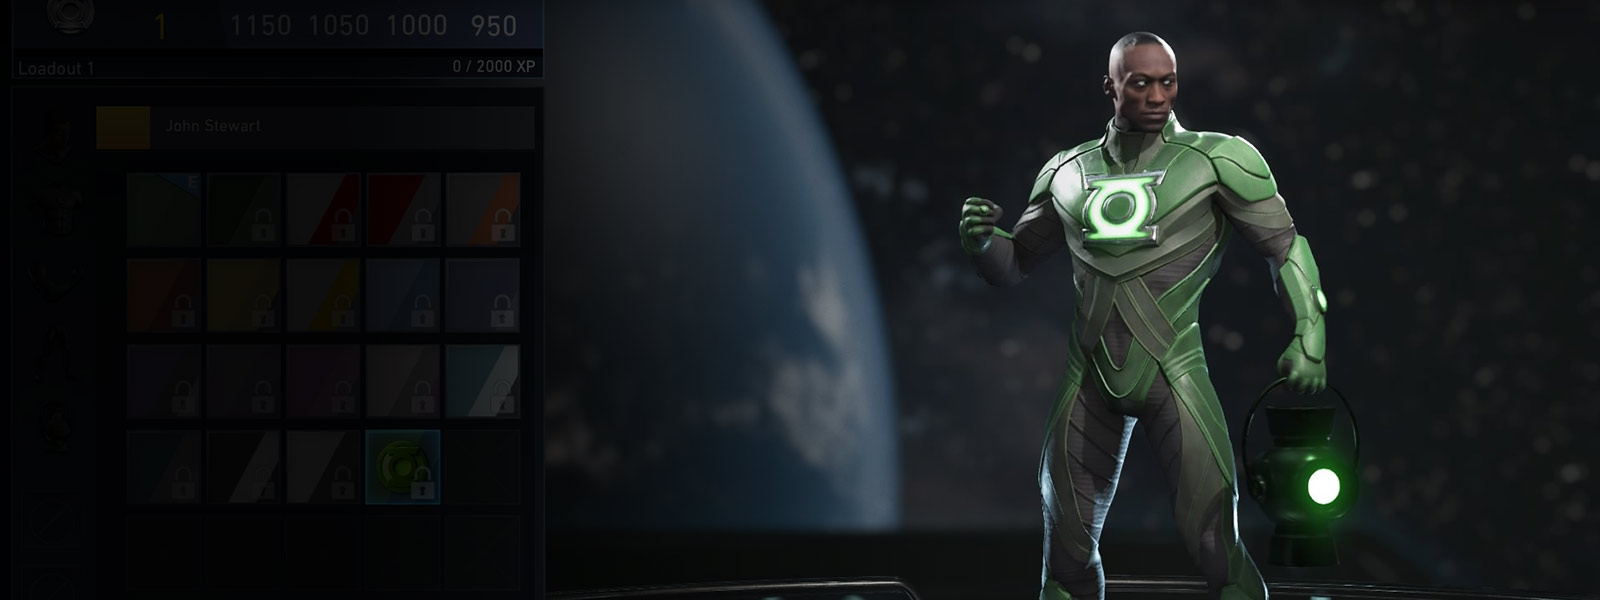 Injustice 2 equipping